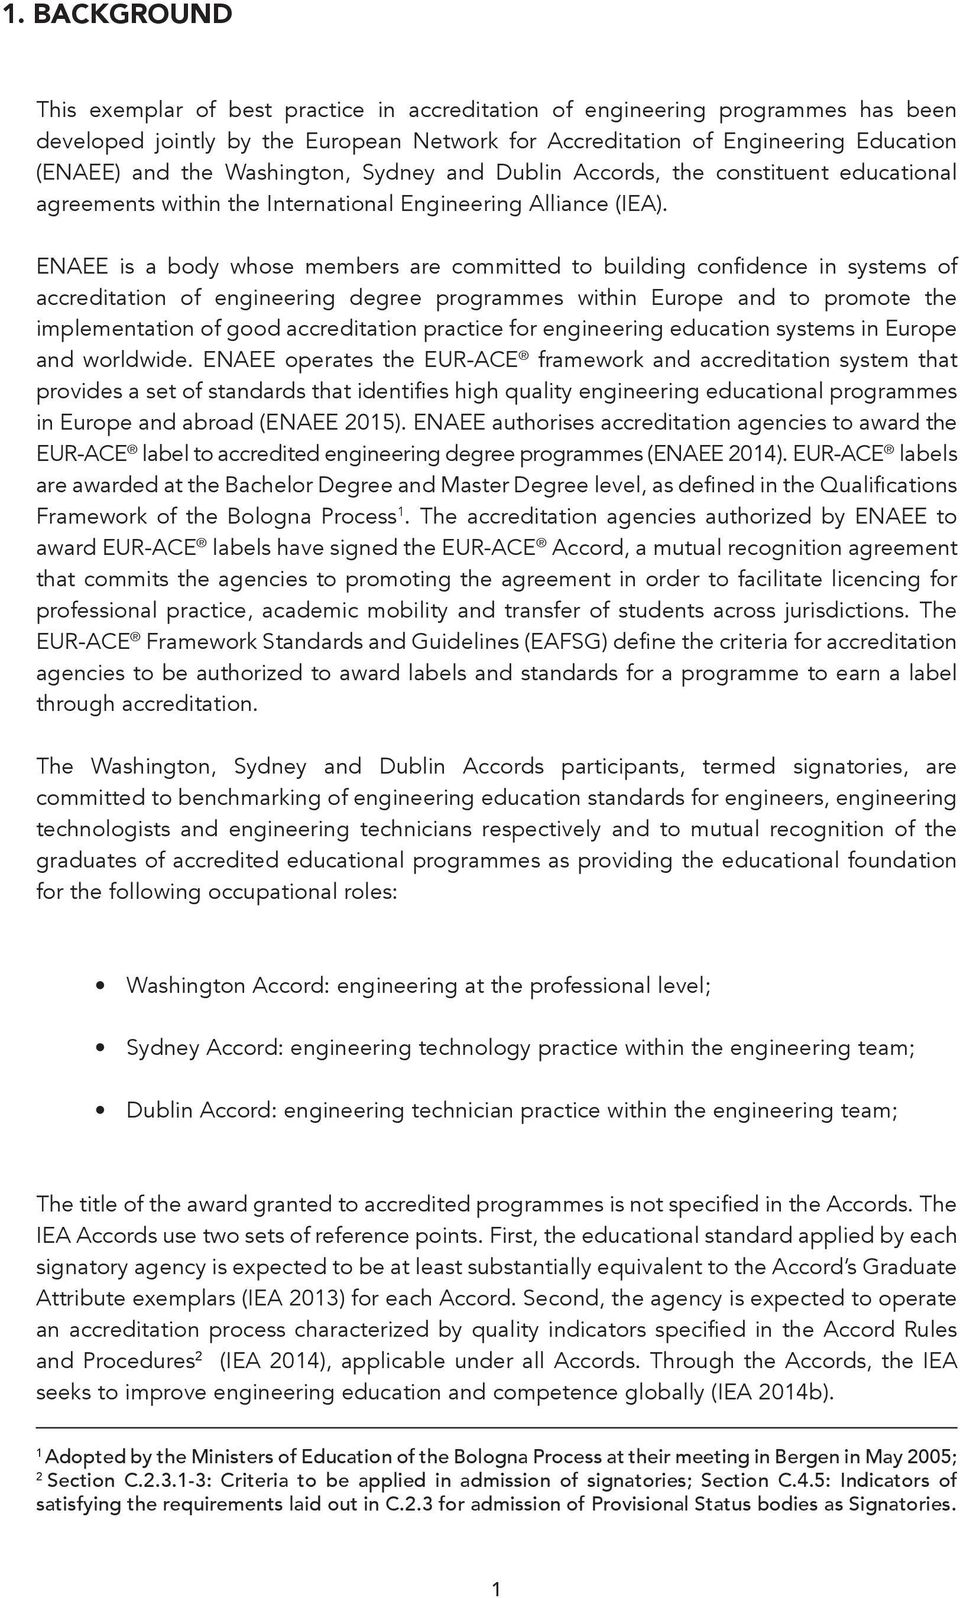 ENAEE is a body whose members are committed to building confidence in systems of accreditation of engineering degree programmes within Europe and to promote the implementation of good accreditation